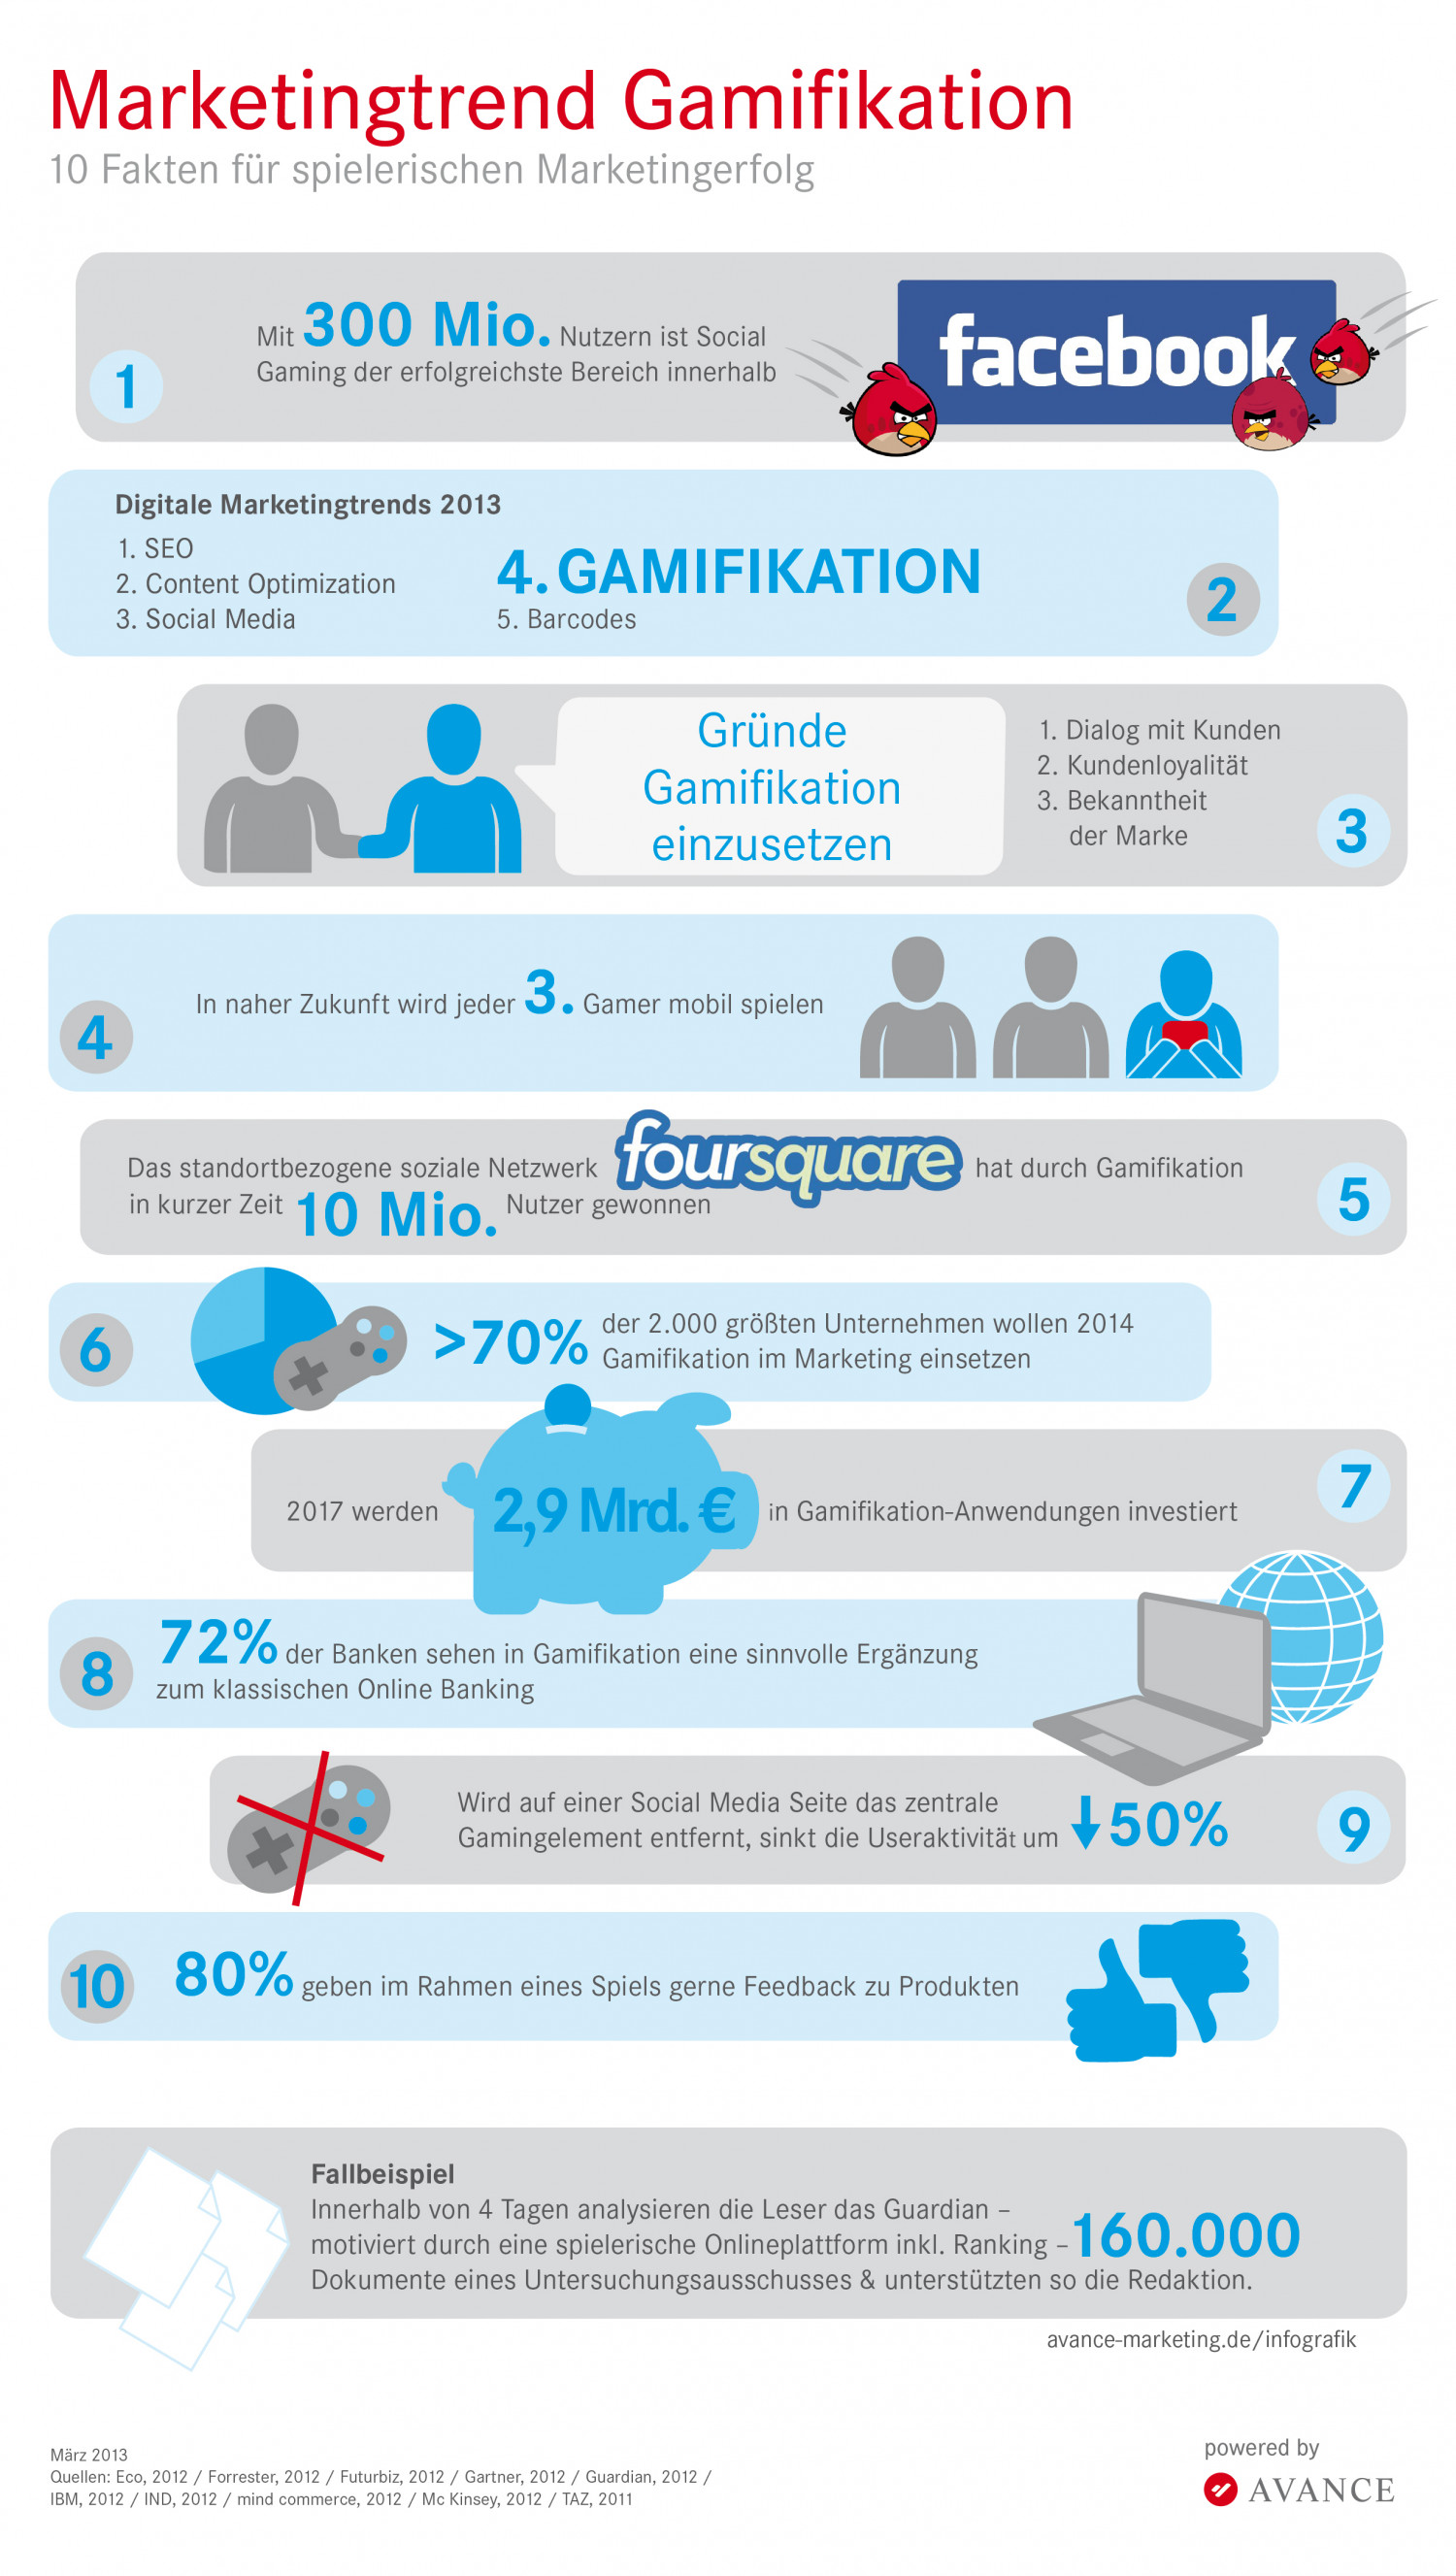 Marketingtrend Gamifikation Infographic